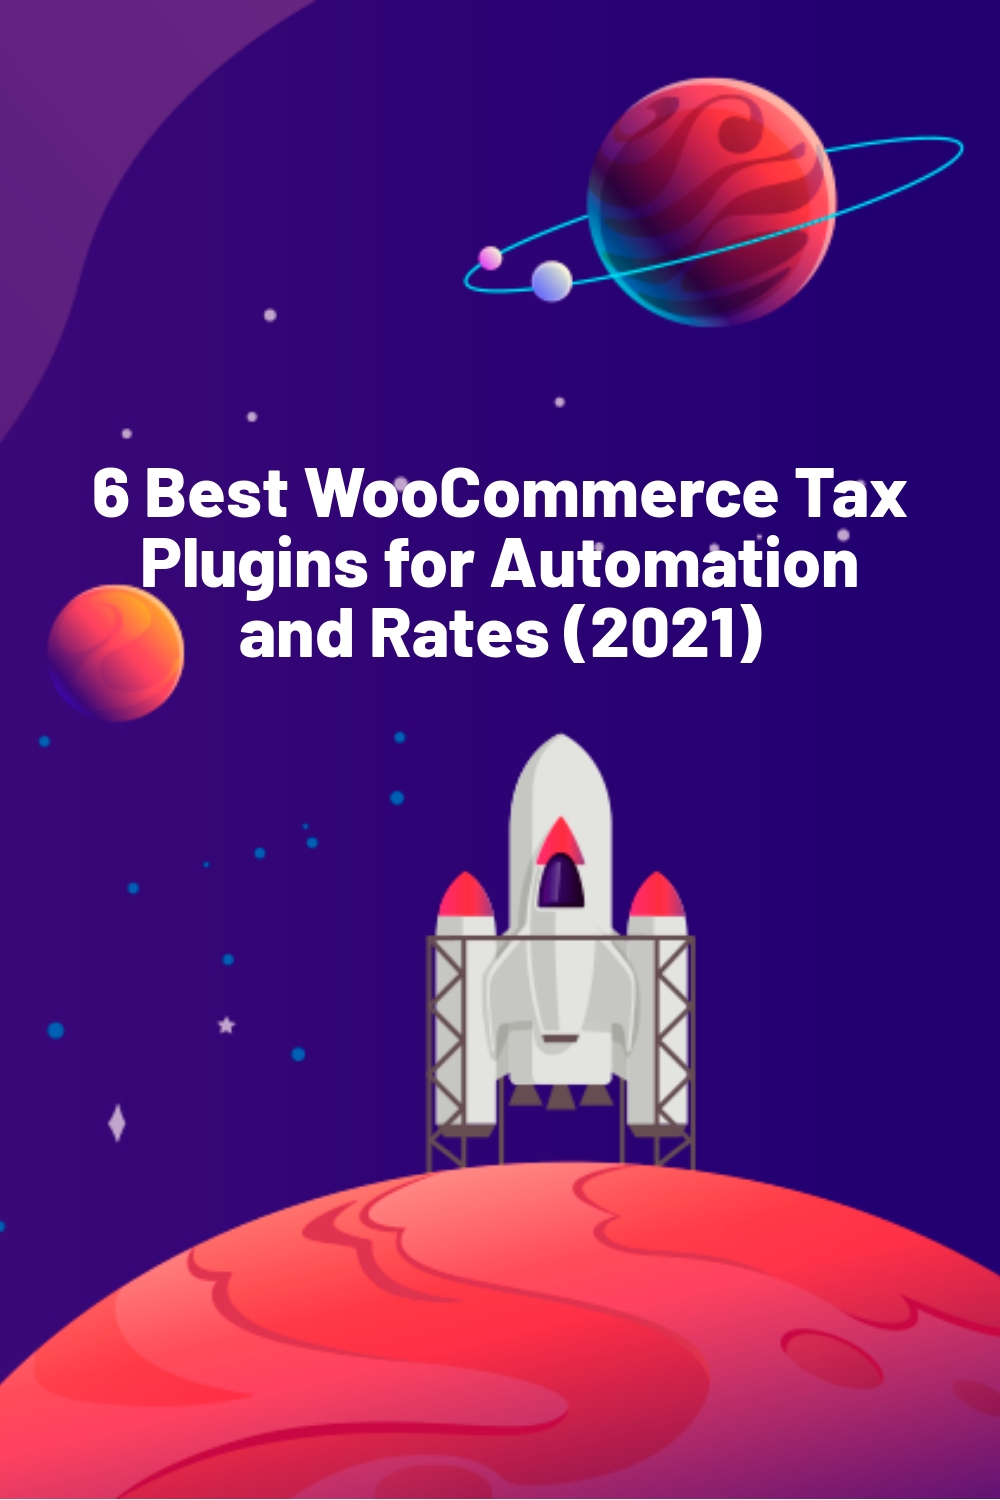 6 Best WooCommerce Tax Plugins for Automation and Rates (2021)